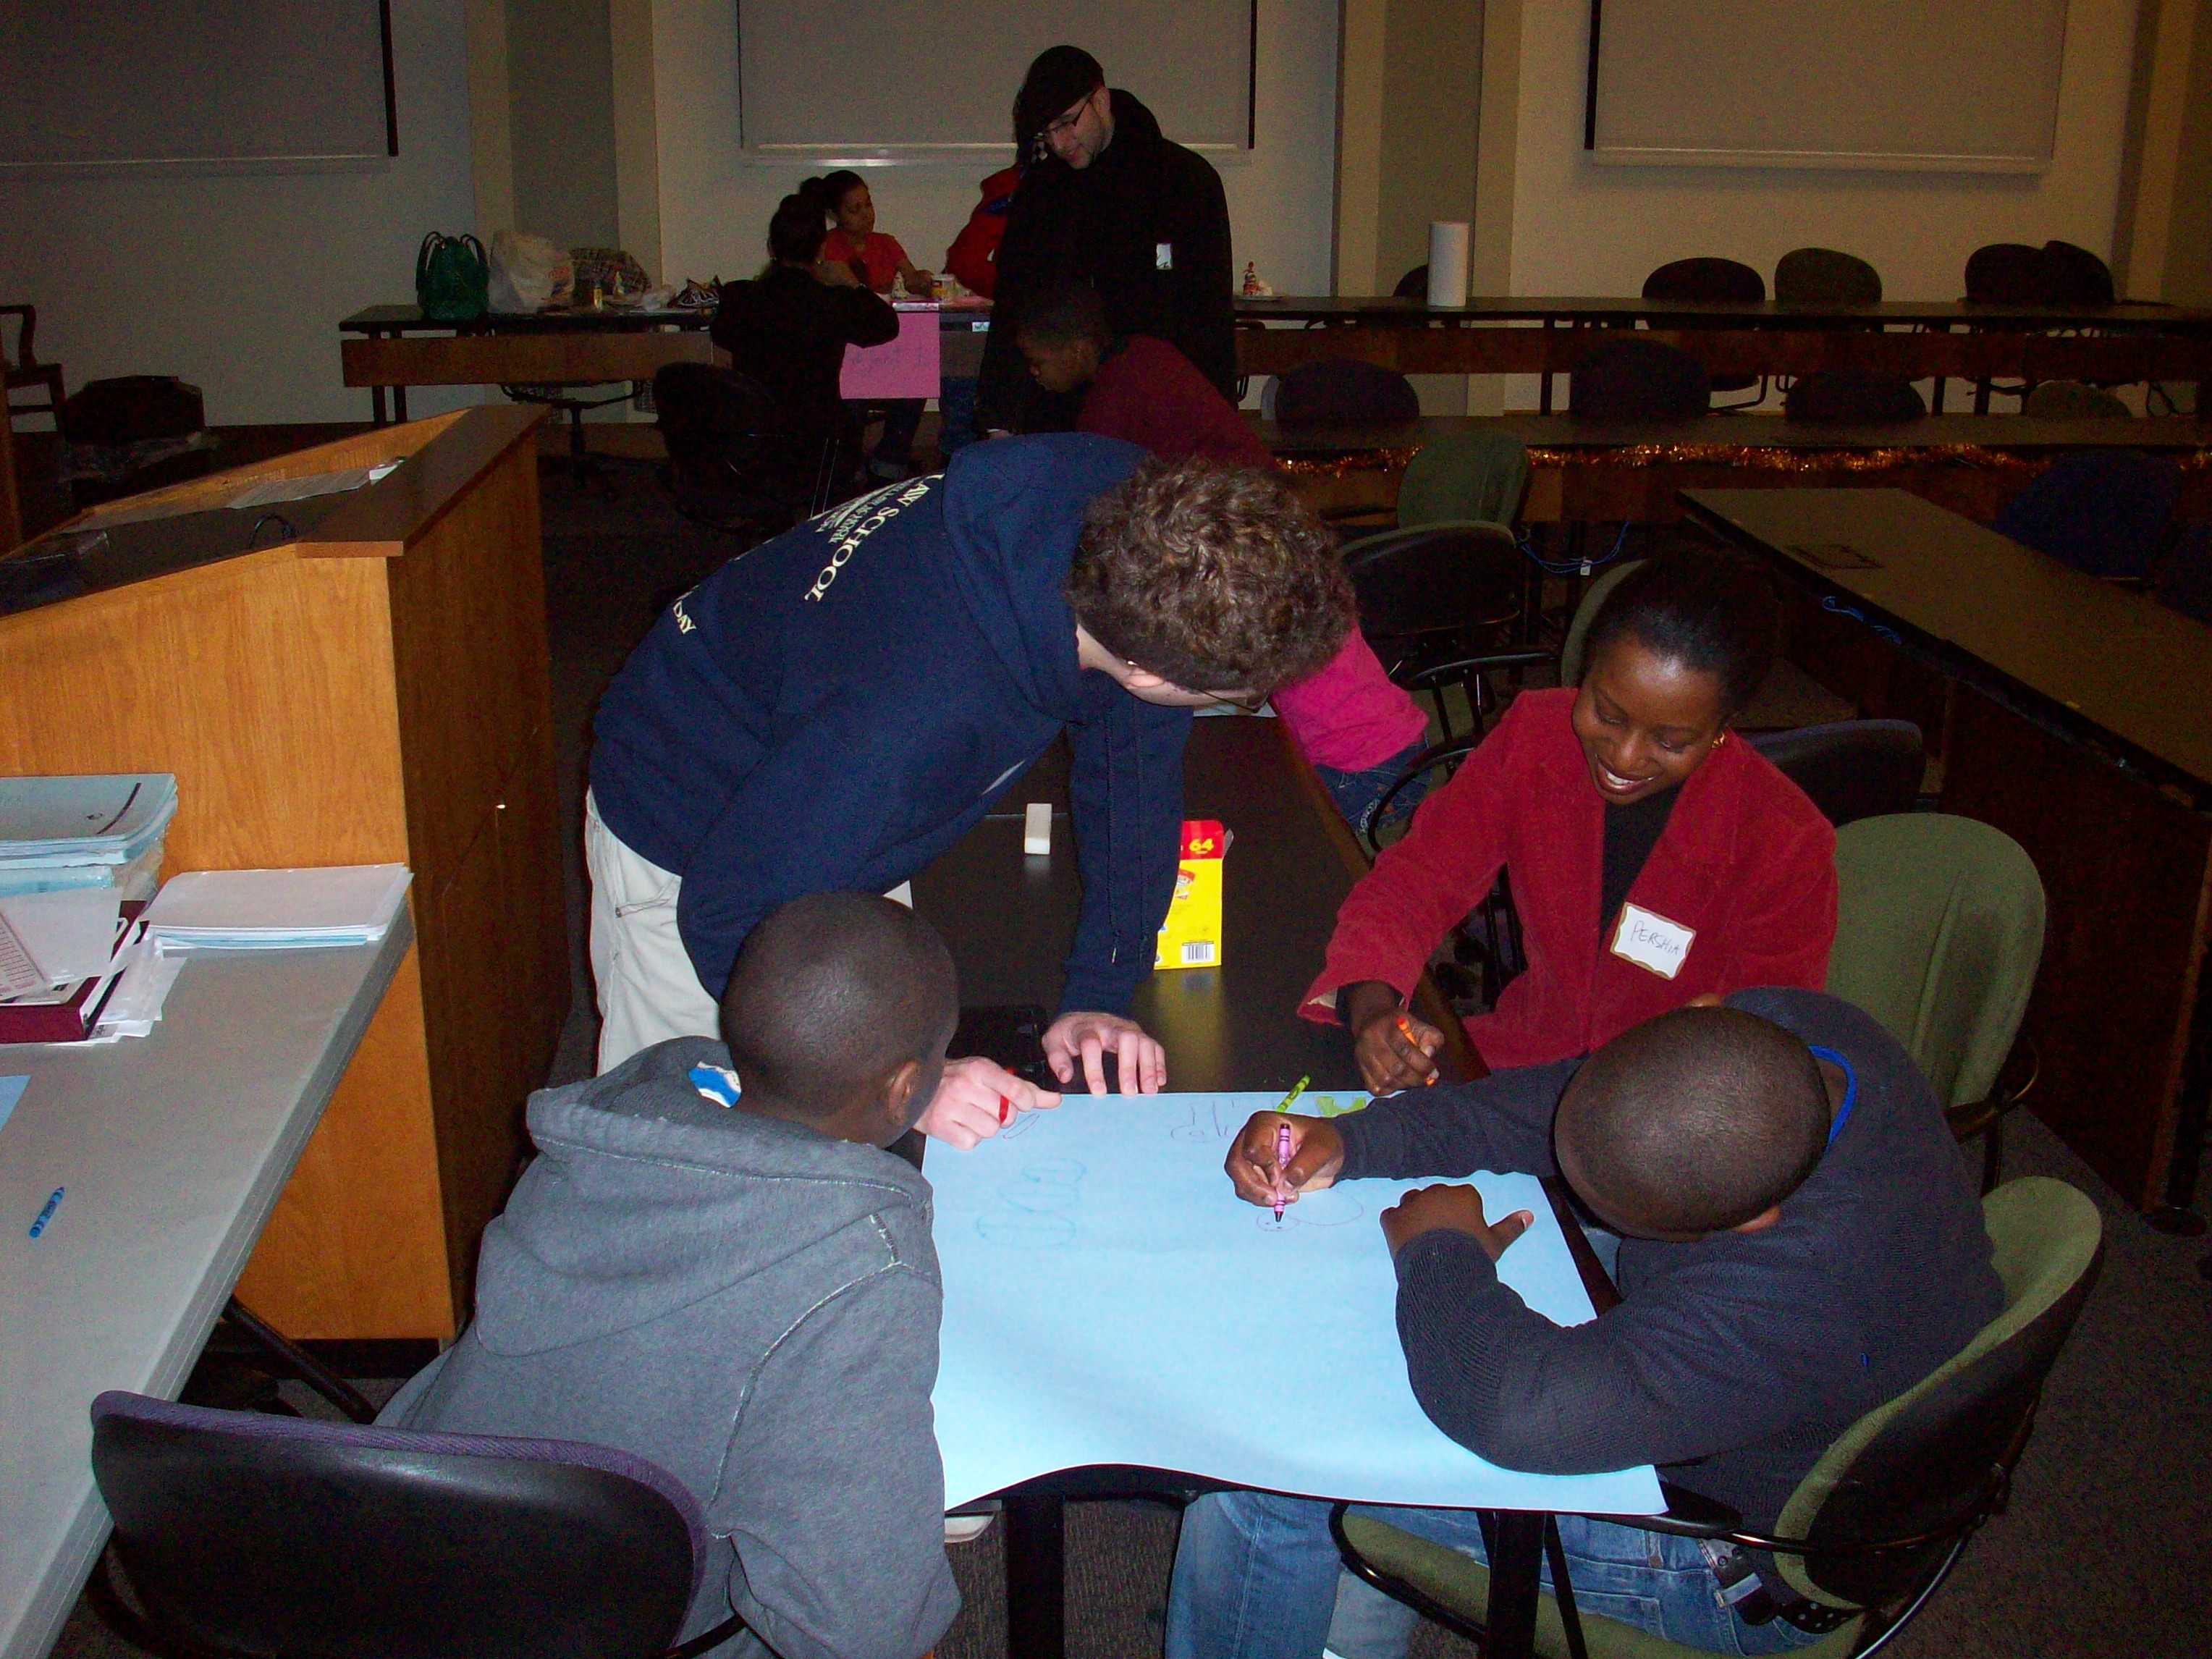 Albany Law Welcomes Naacp Rosa Parks Literacy Education Academy S Local Grade School Students To